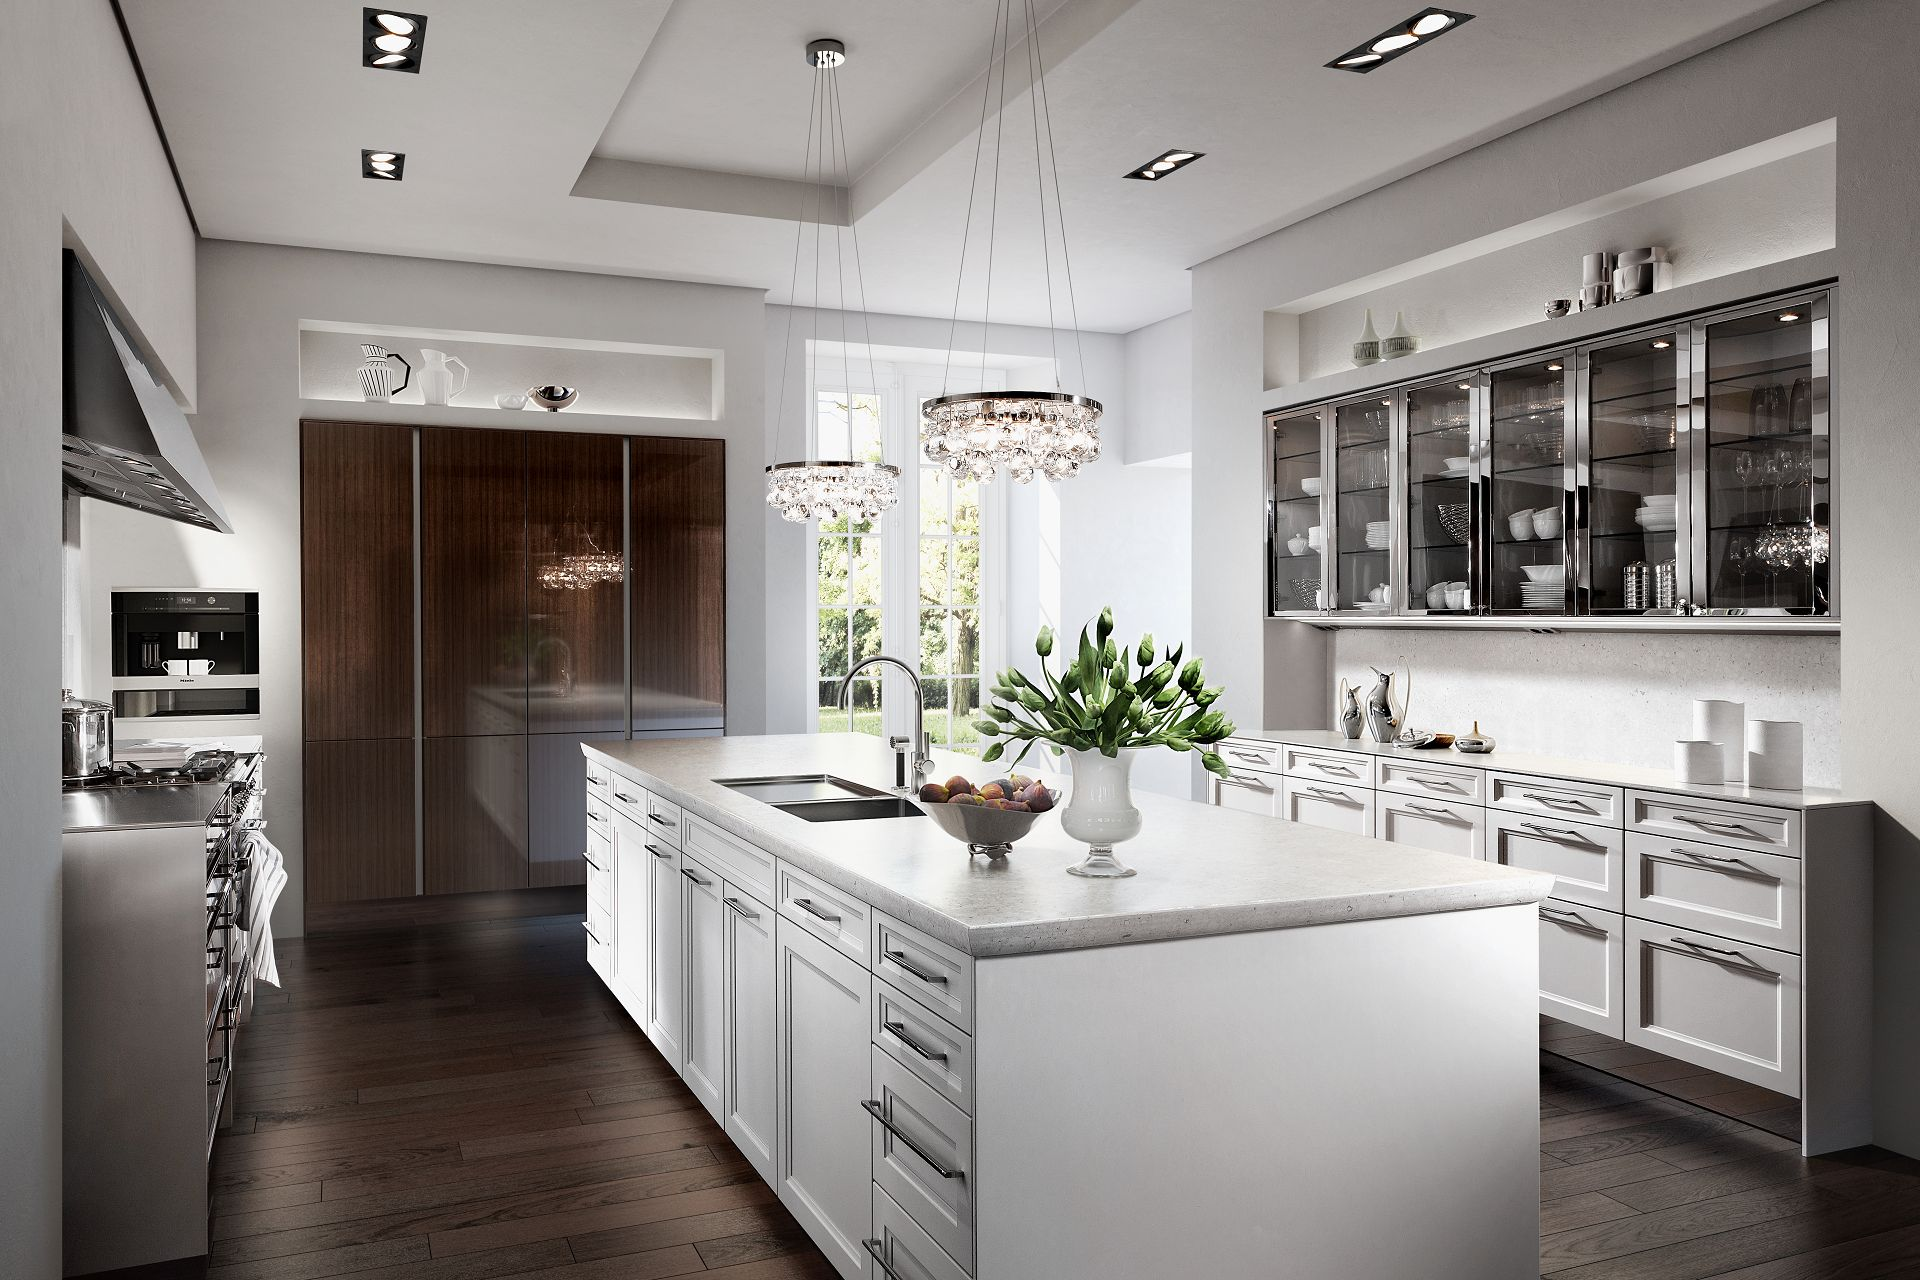 SieMatic Classic: the traditional kitchen in a new composition